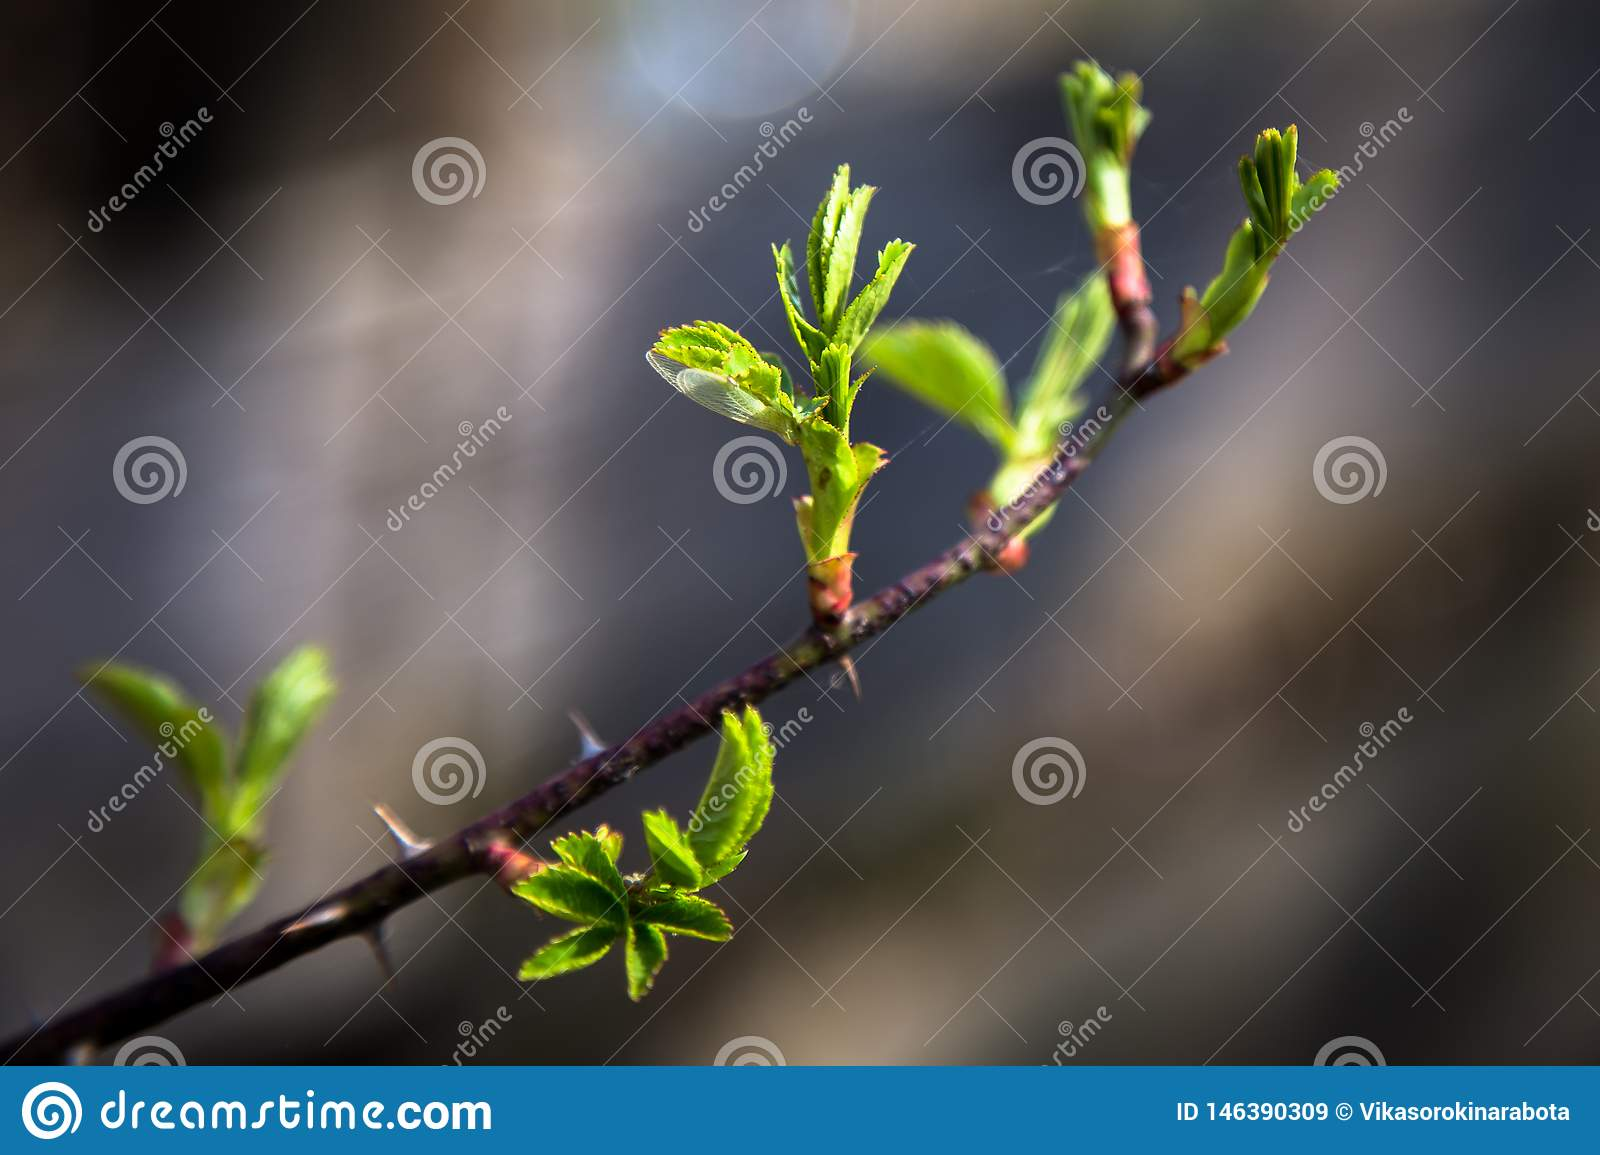 On the photo is a branch of a bush and a tree with a blurred background